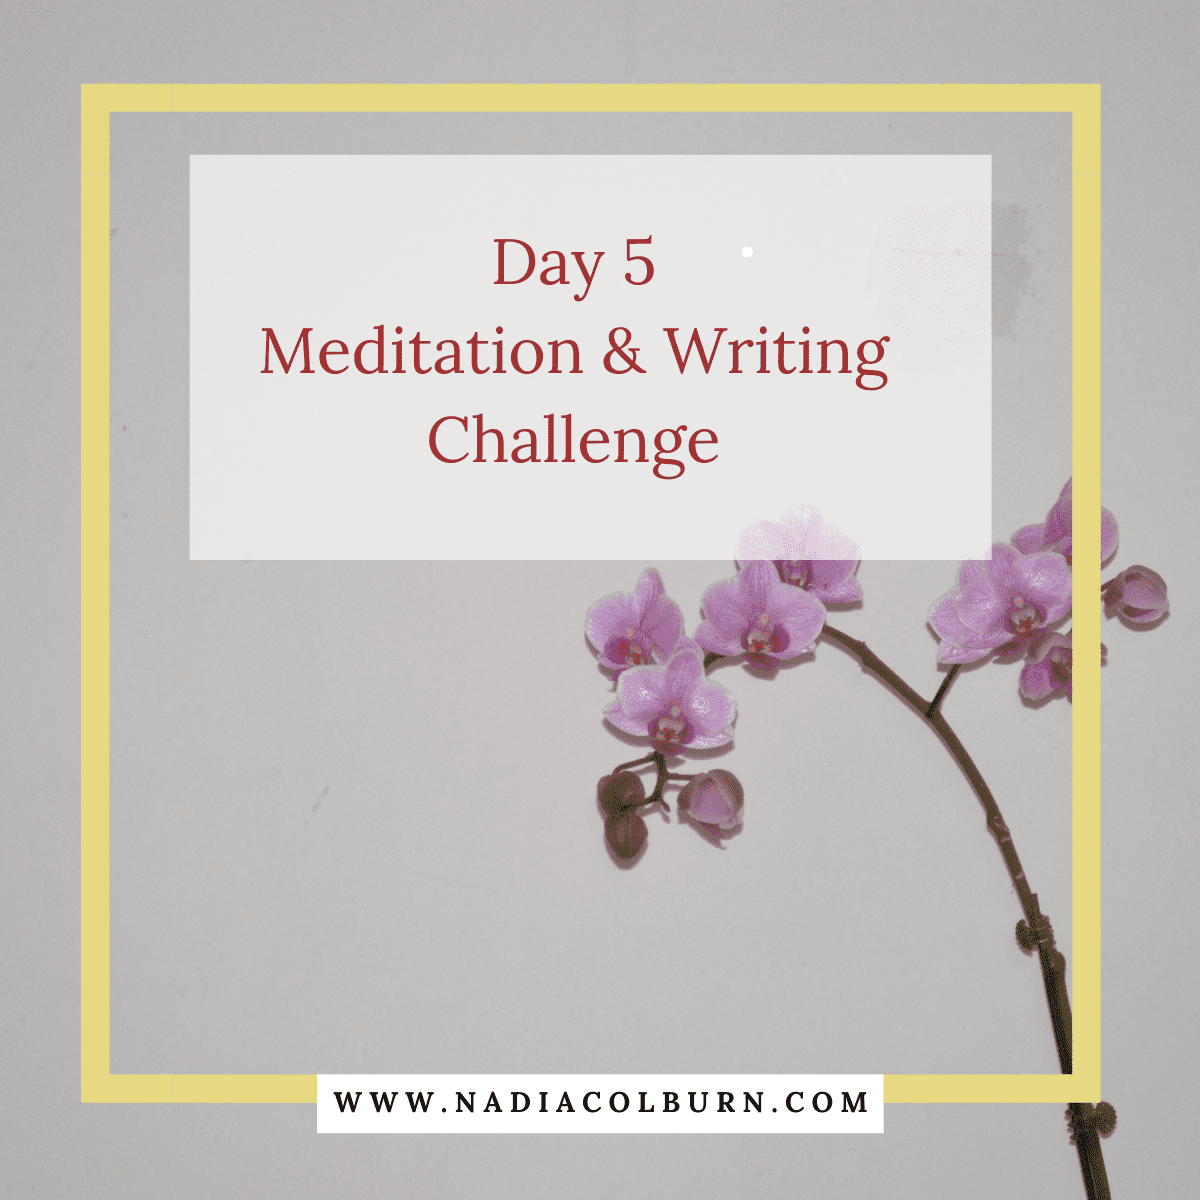 2021 meditation and writing challenge day 5 8